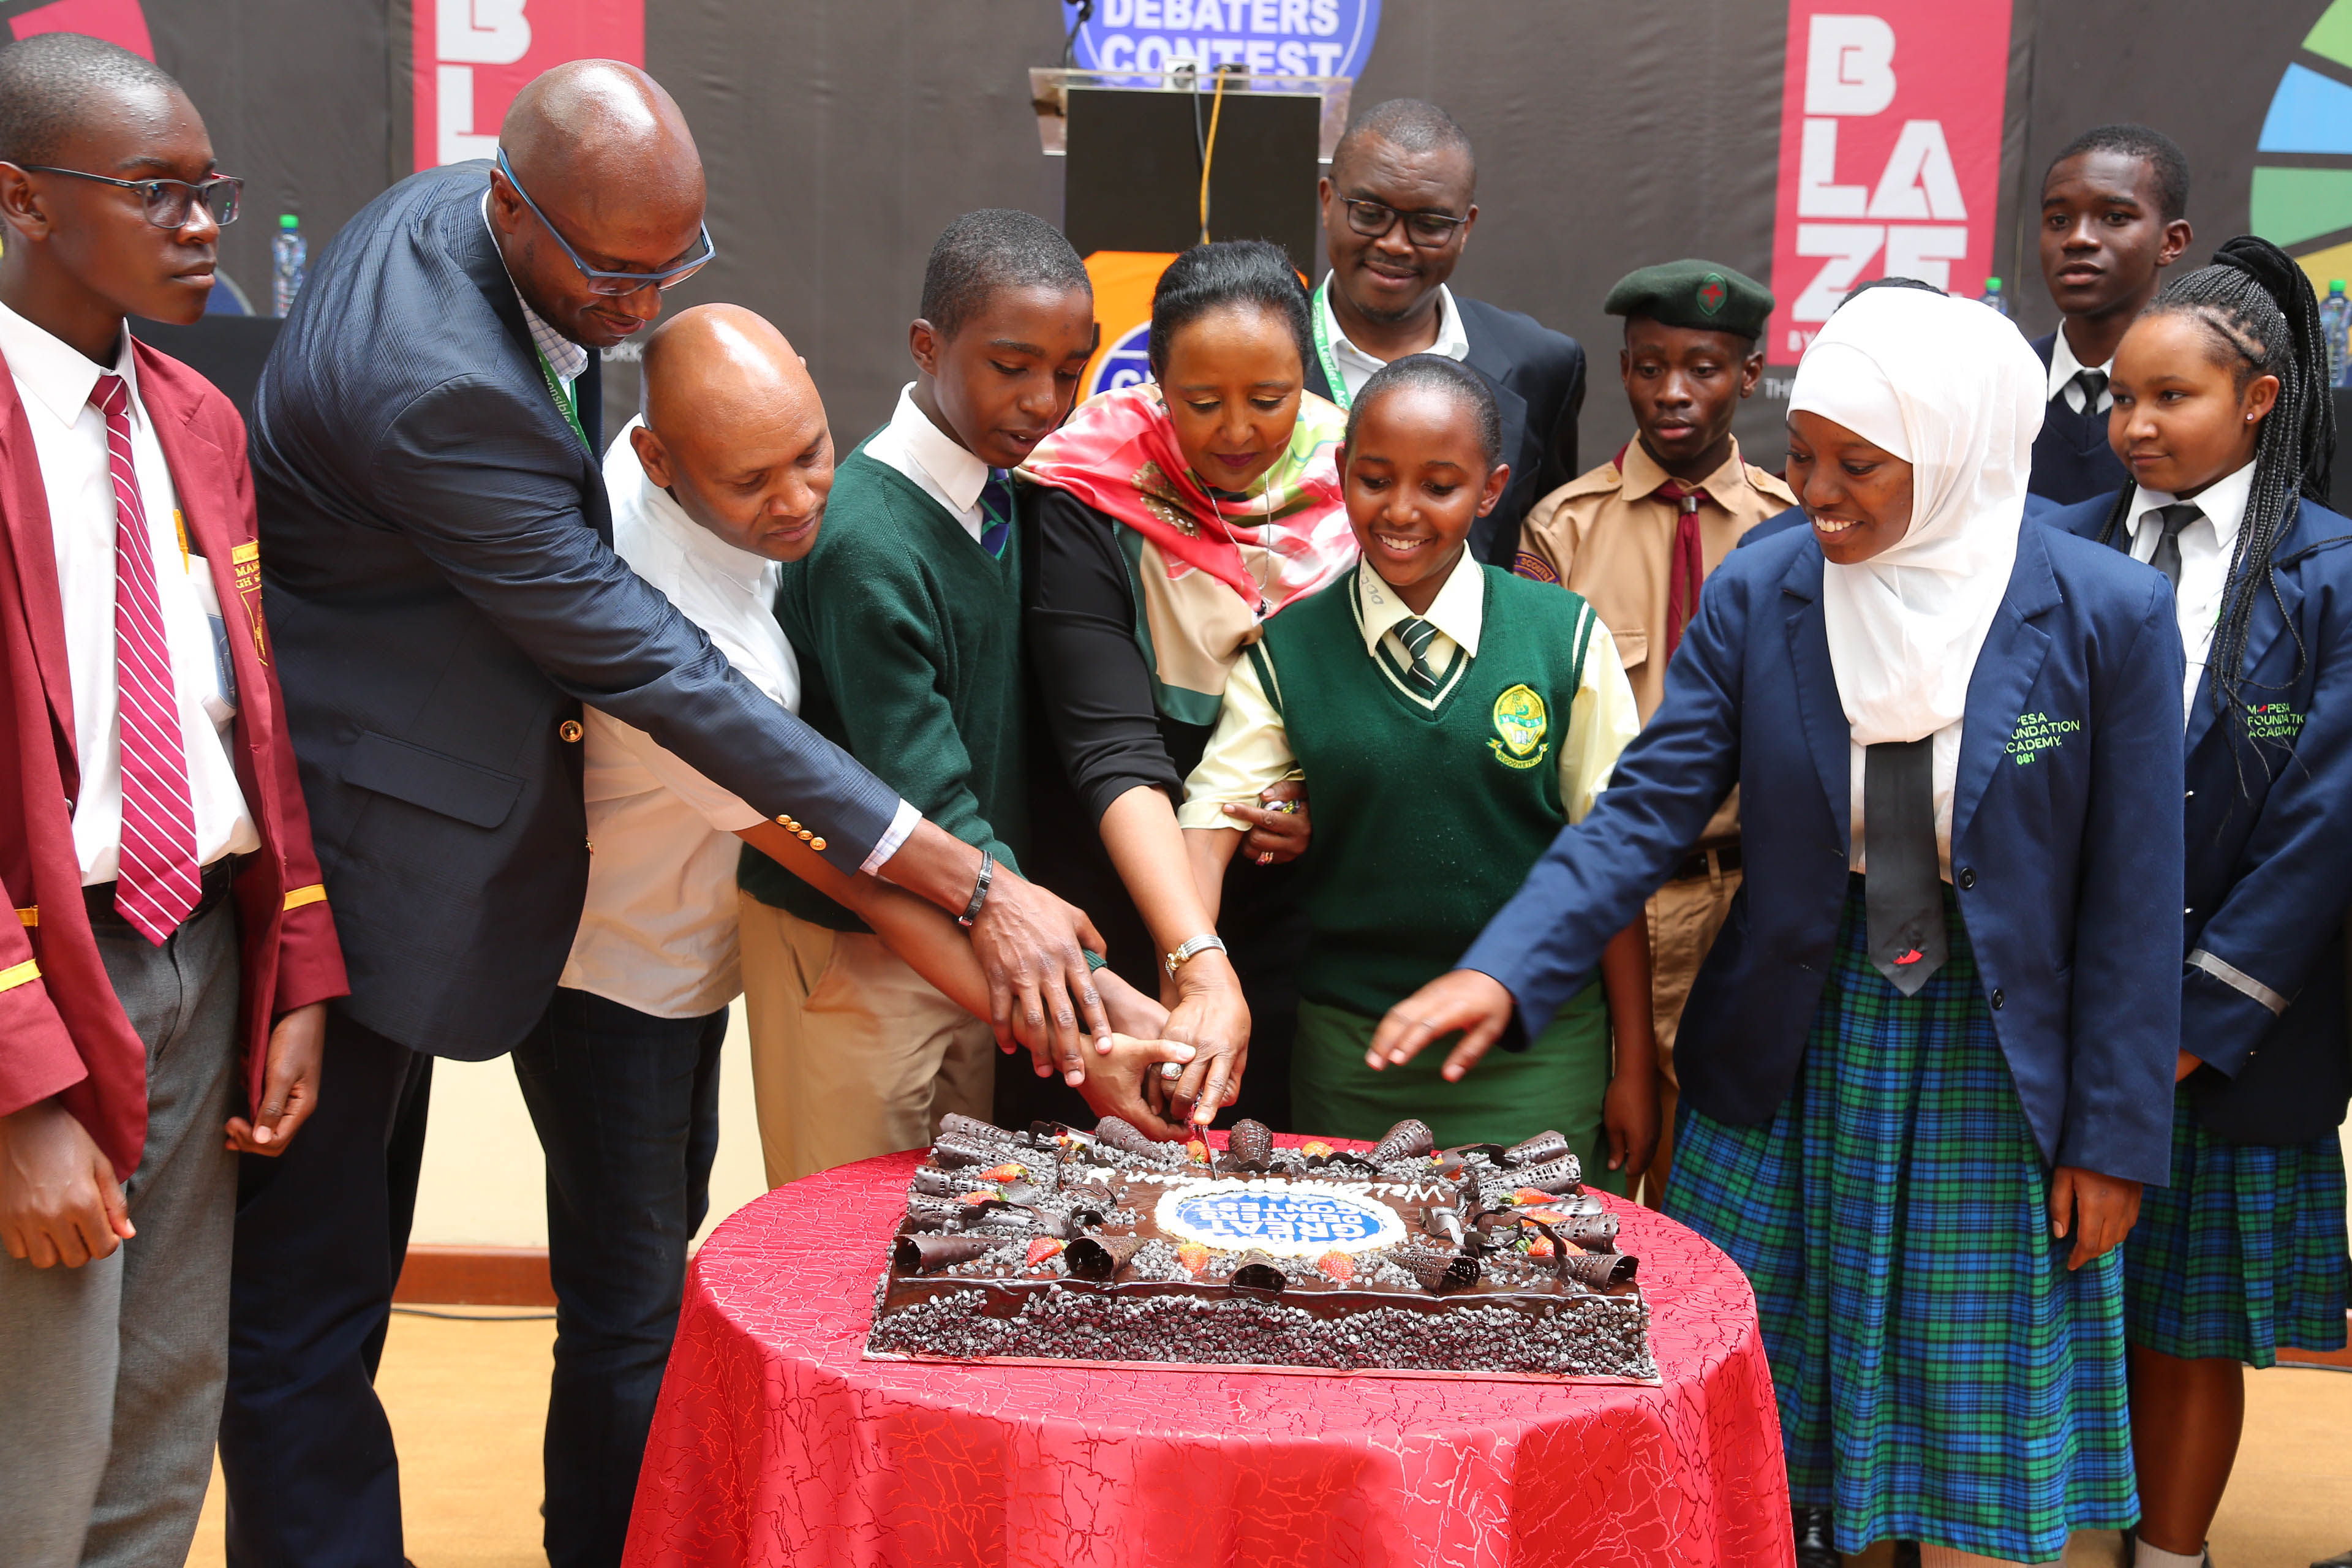 Education CS,  Launches The Great Debaters Contest at The Academy